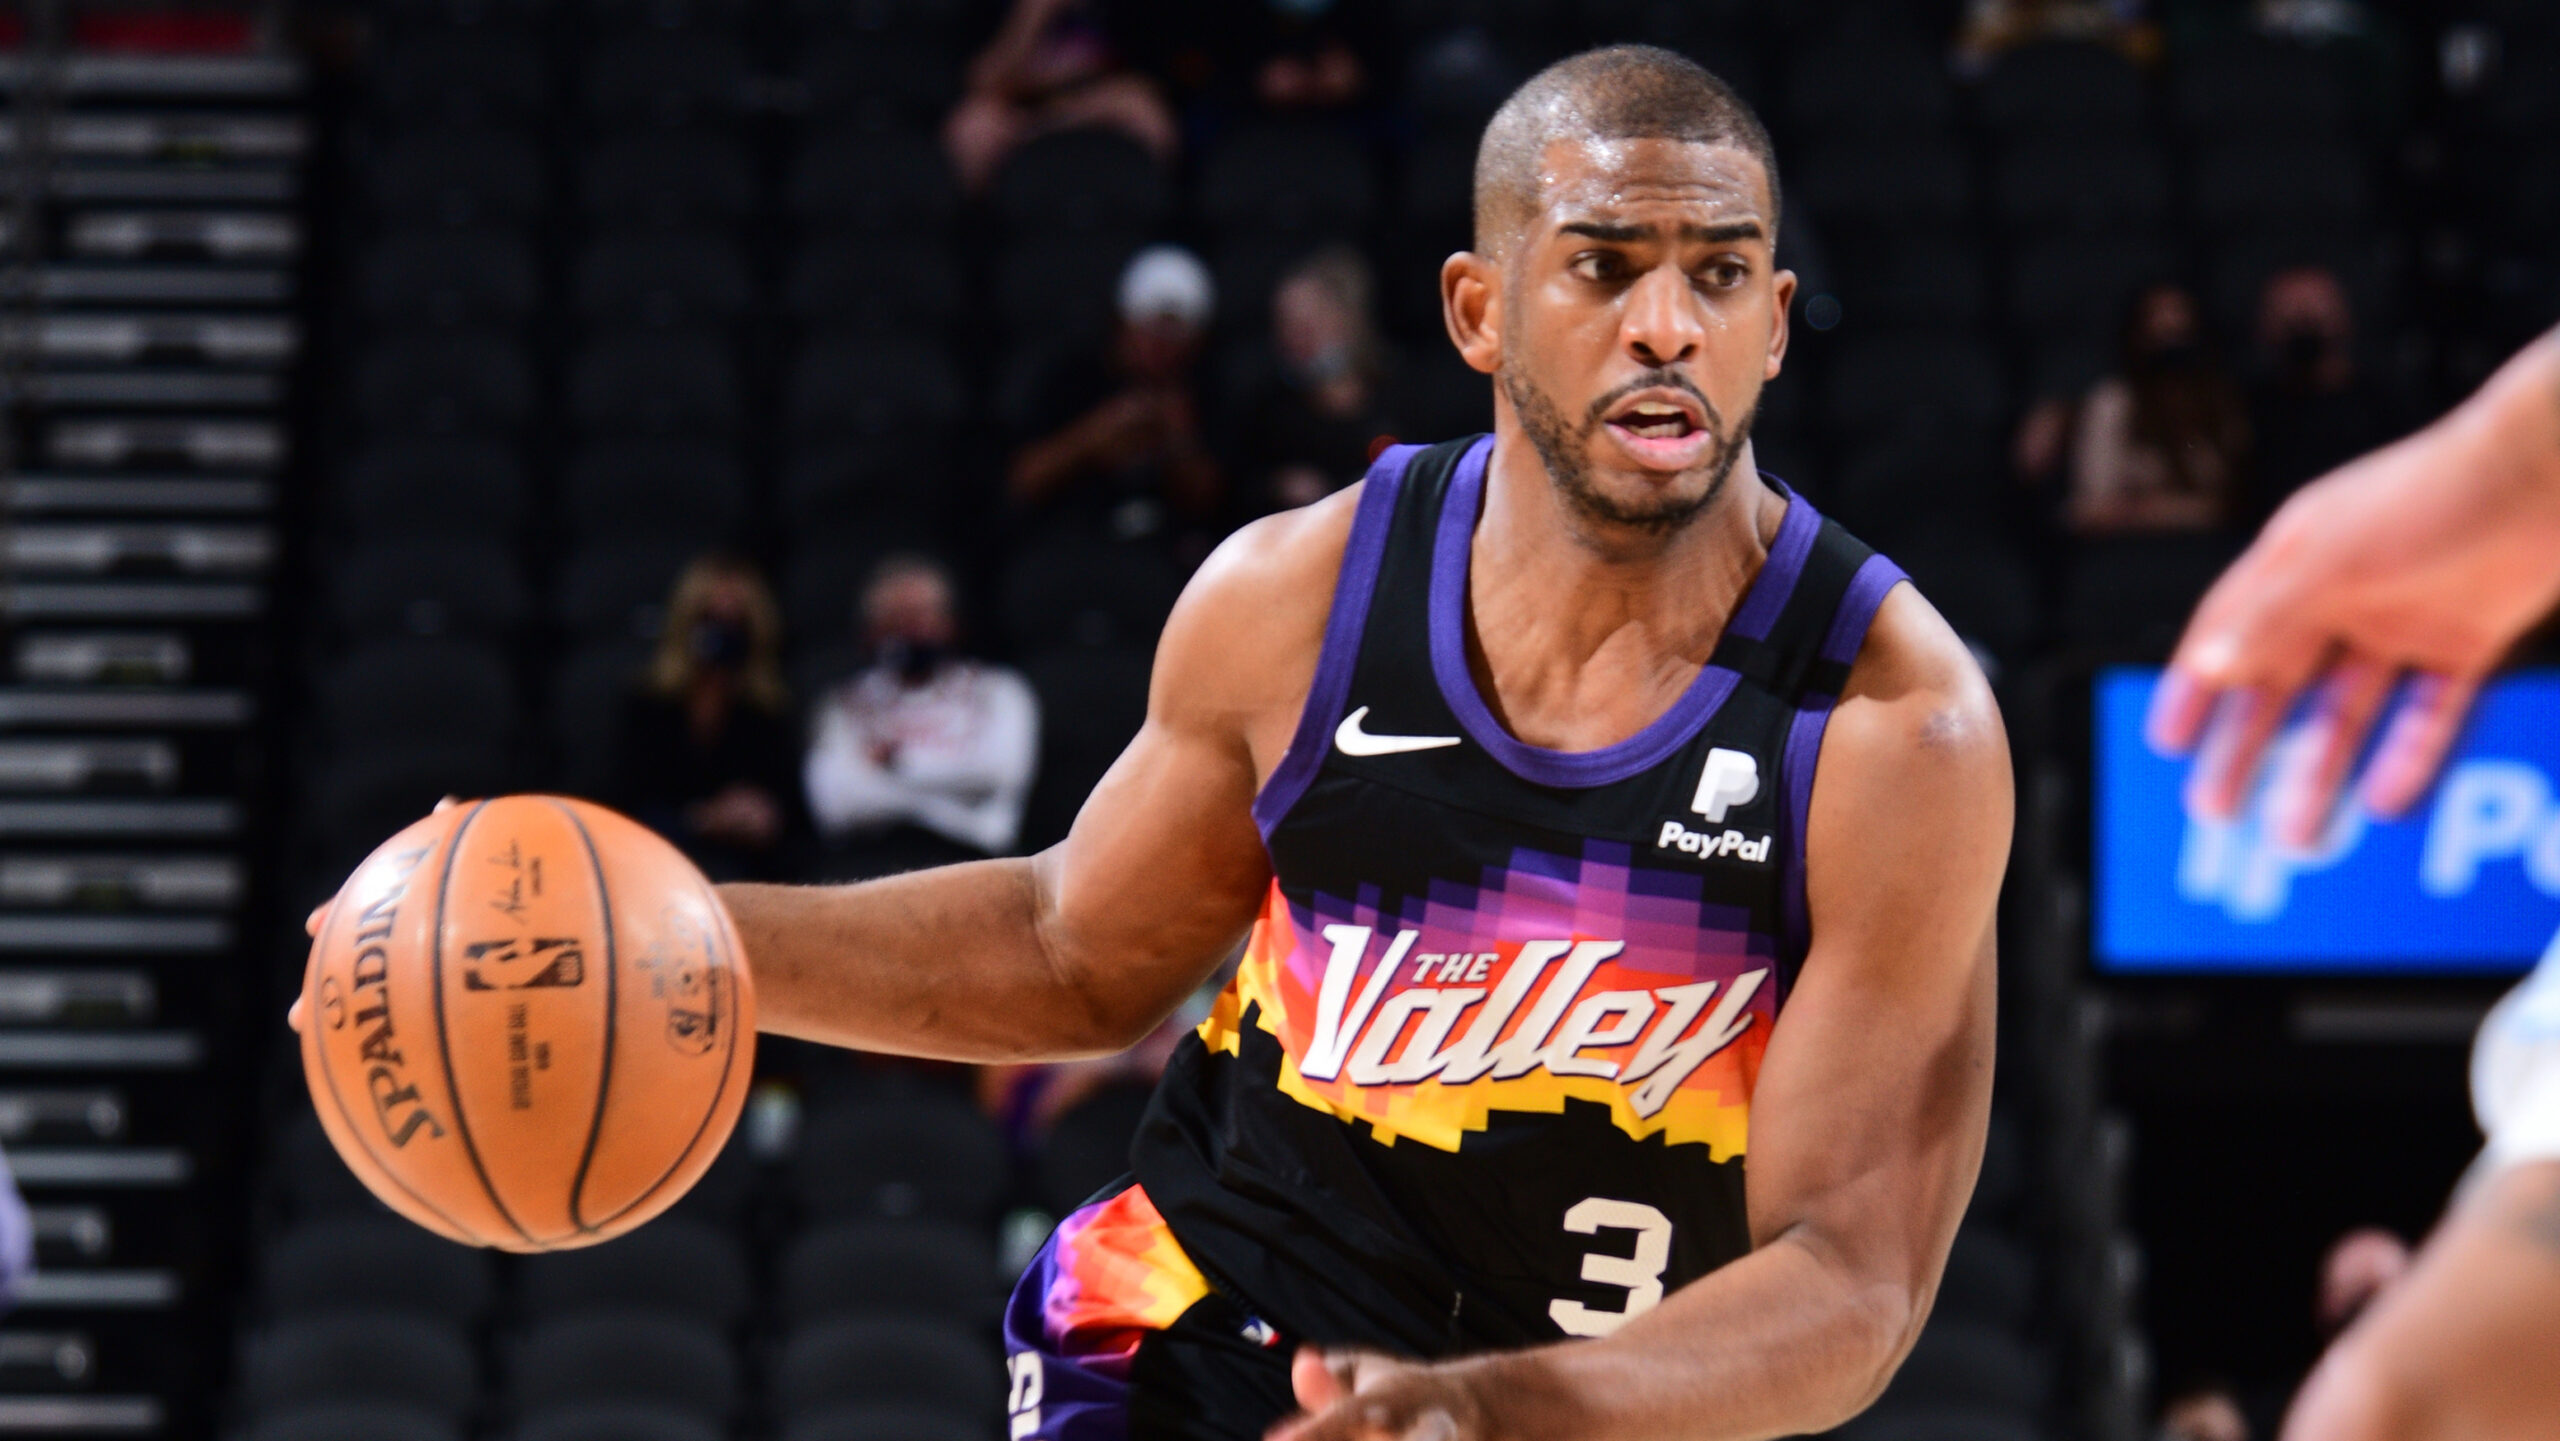 10,000 and counting: Chris Paul shows no signs of age